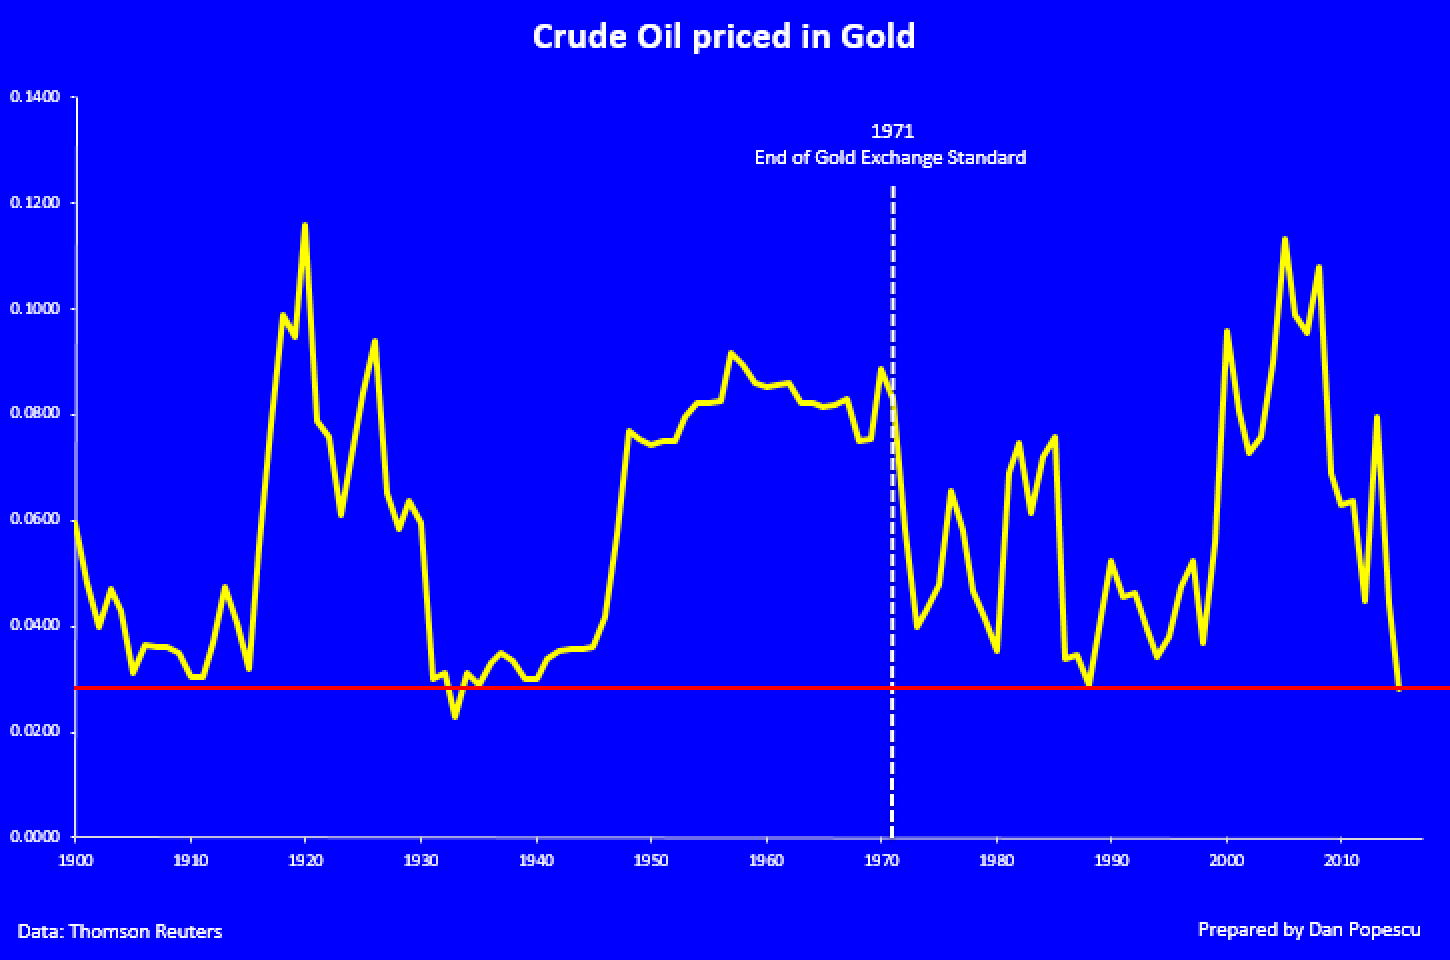 Crude Oil priced in gold